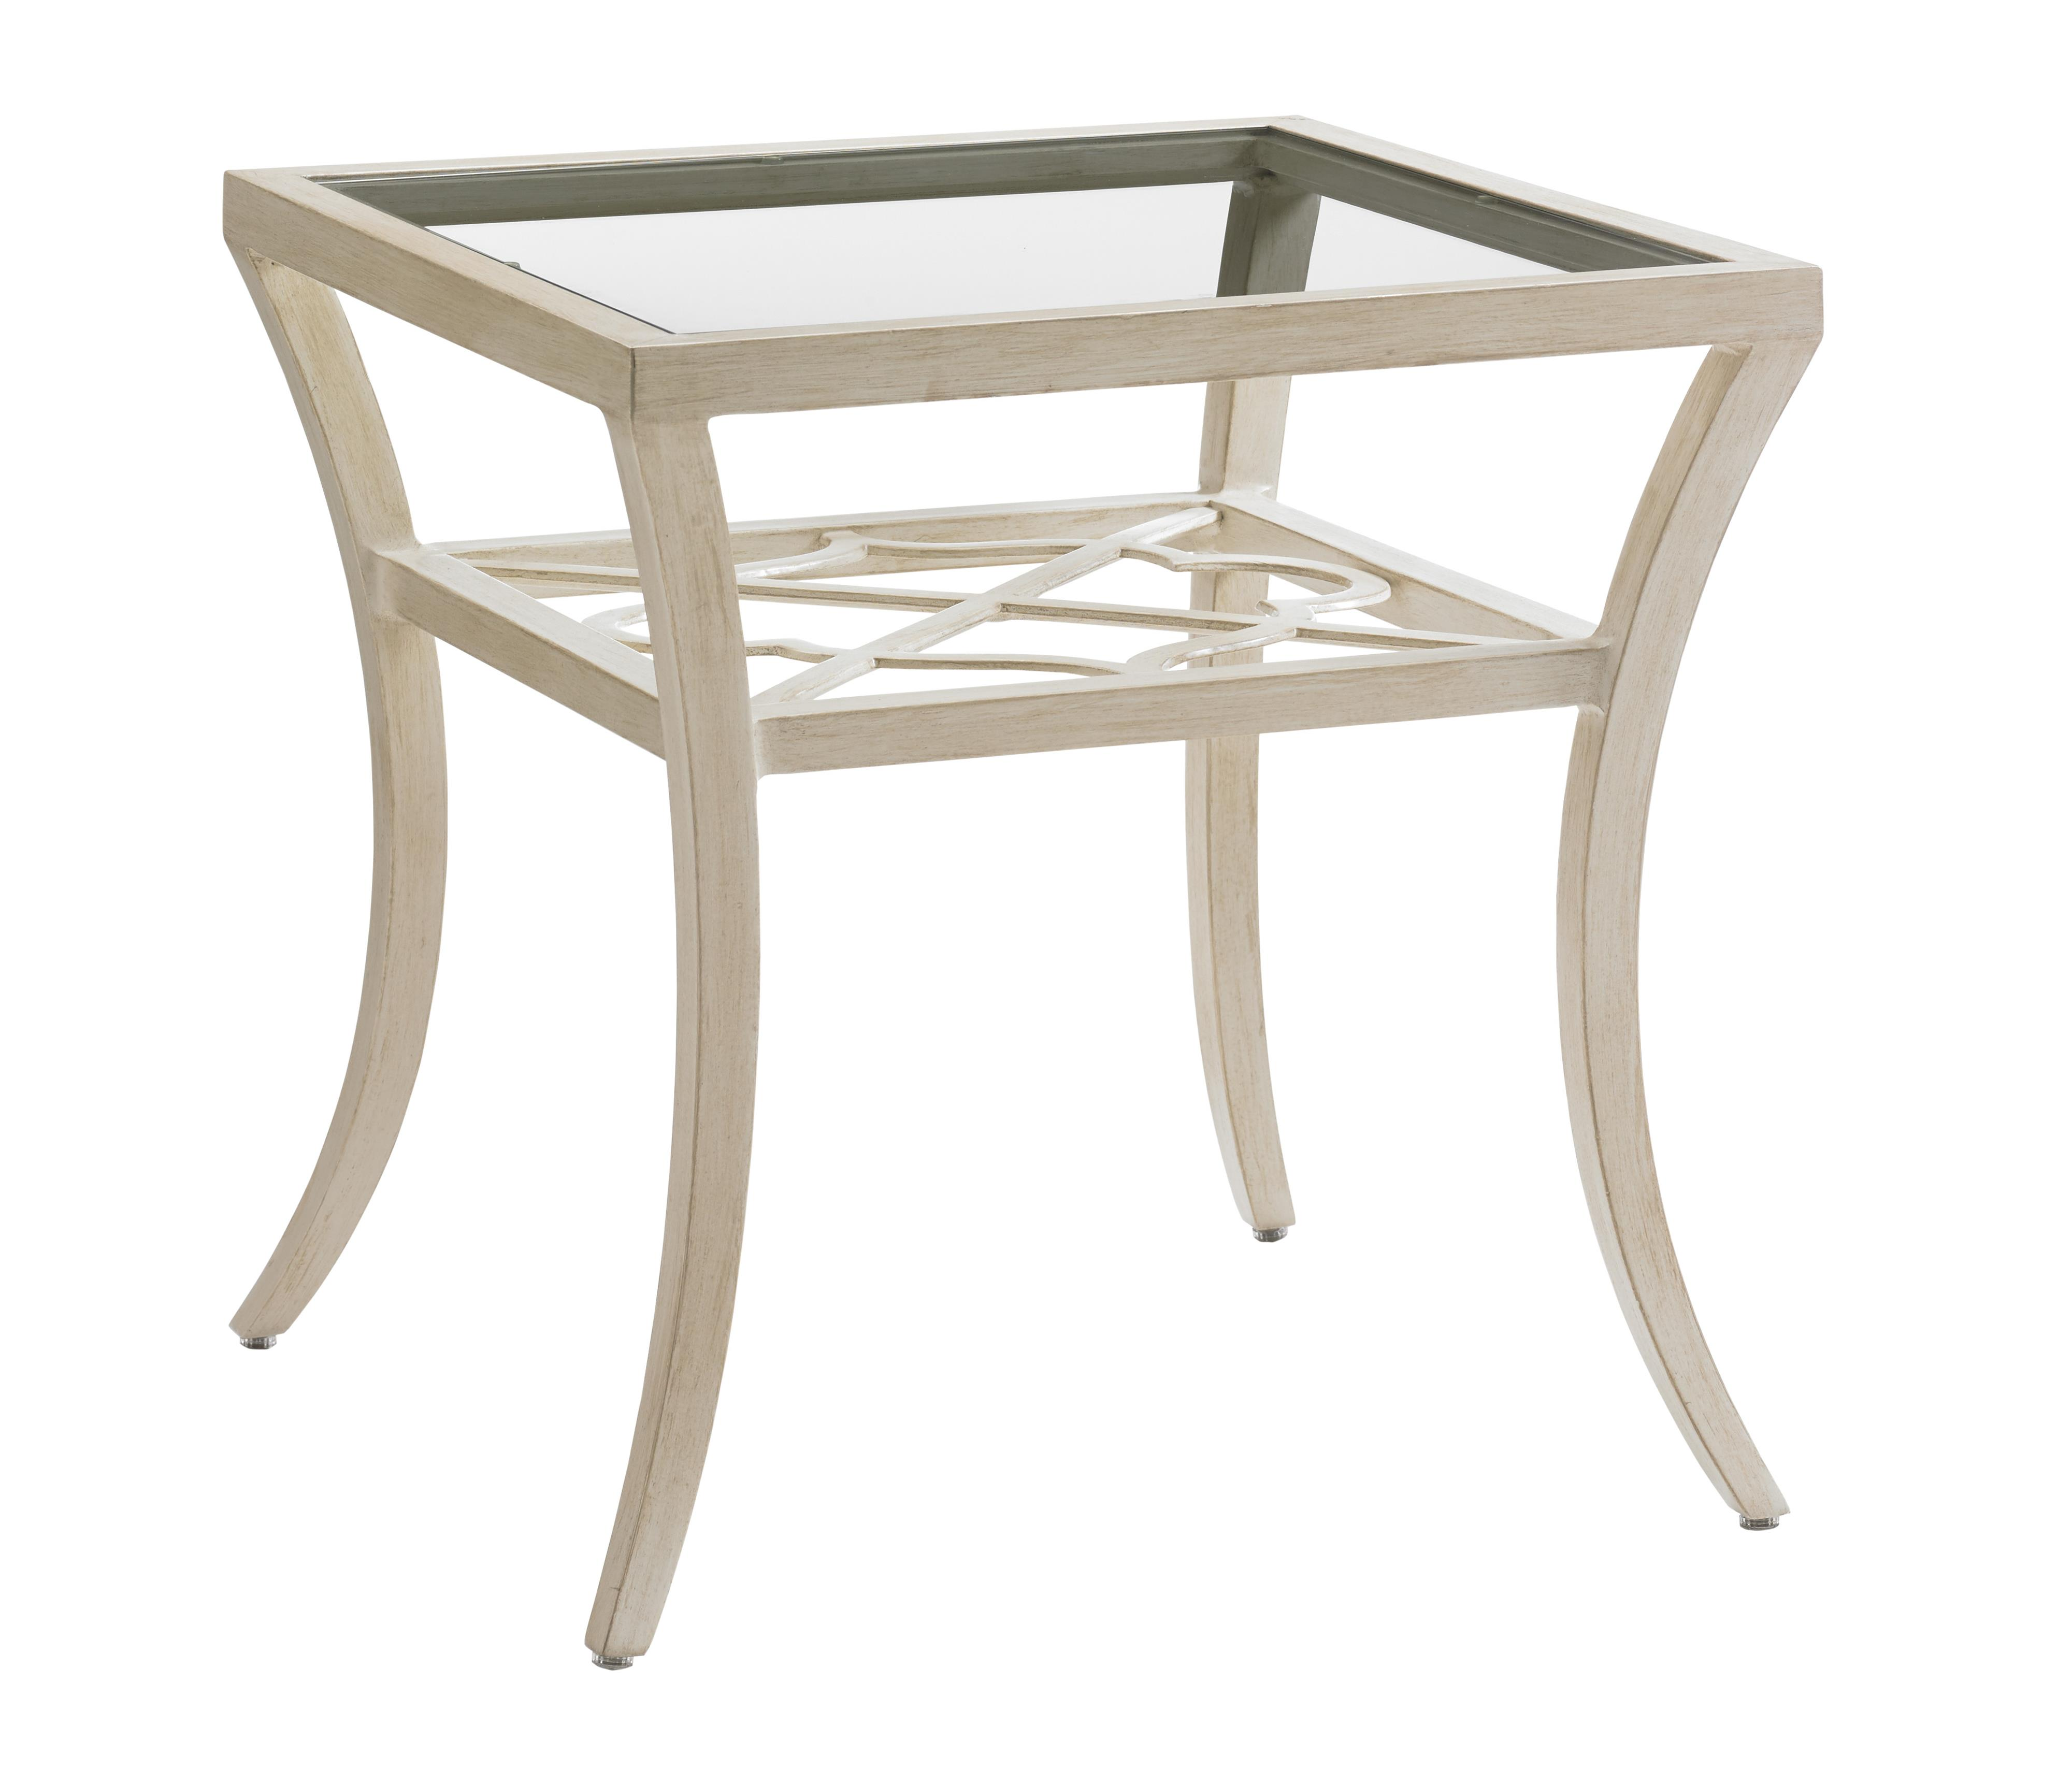 Misty Garden Square End Table with Inset Glass Top by Tommy Bahama Outdoor Living at Baer's Furniture